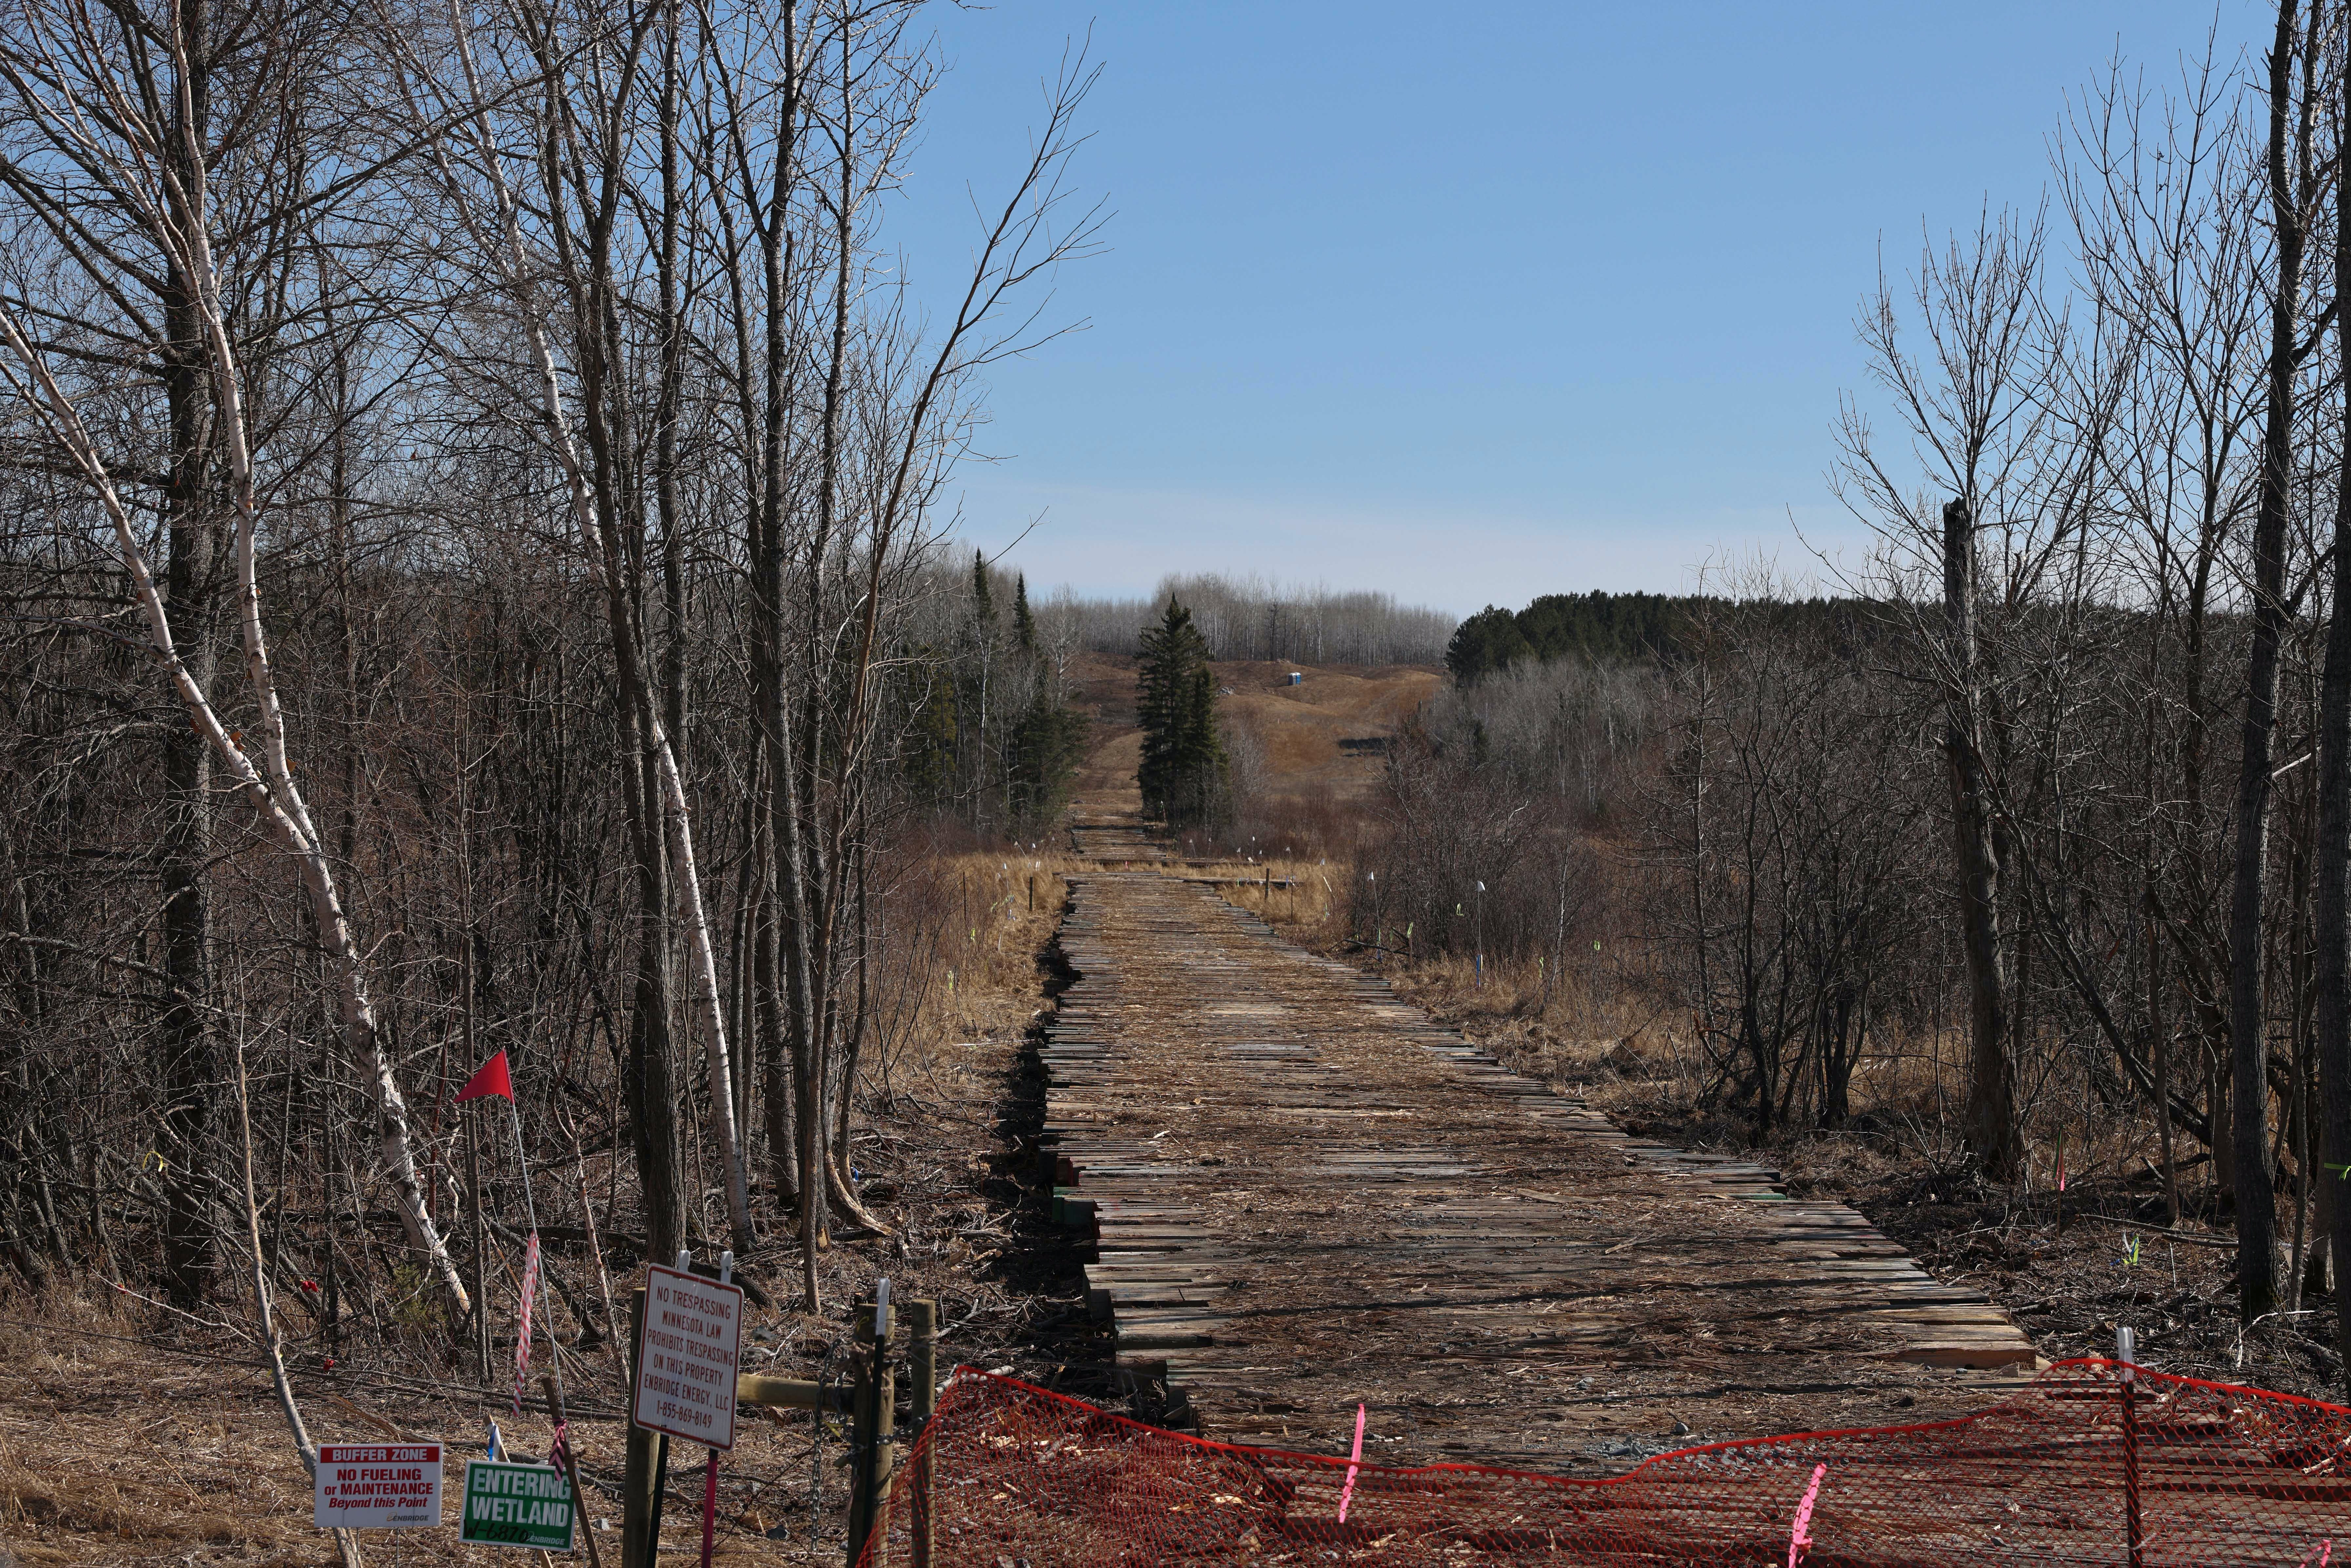 Easement of Line 3 near headwaters of the Mississippi River in northern Minnesota on March 22nd, 2021